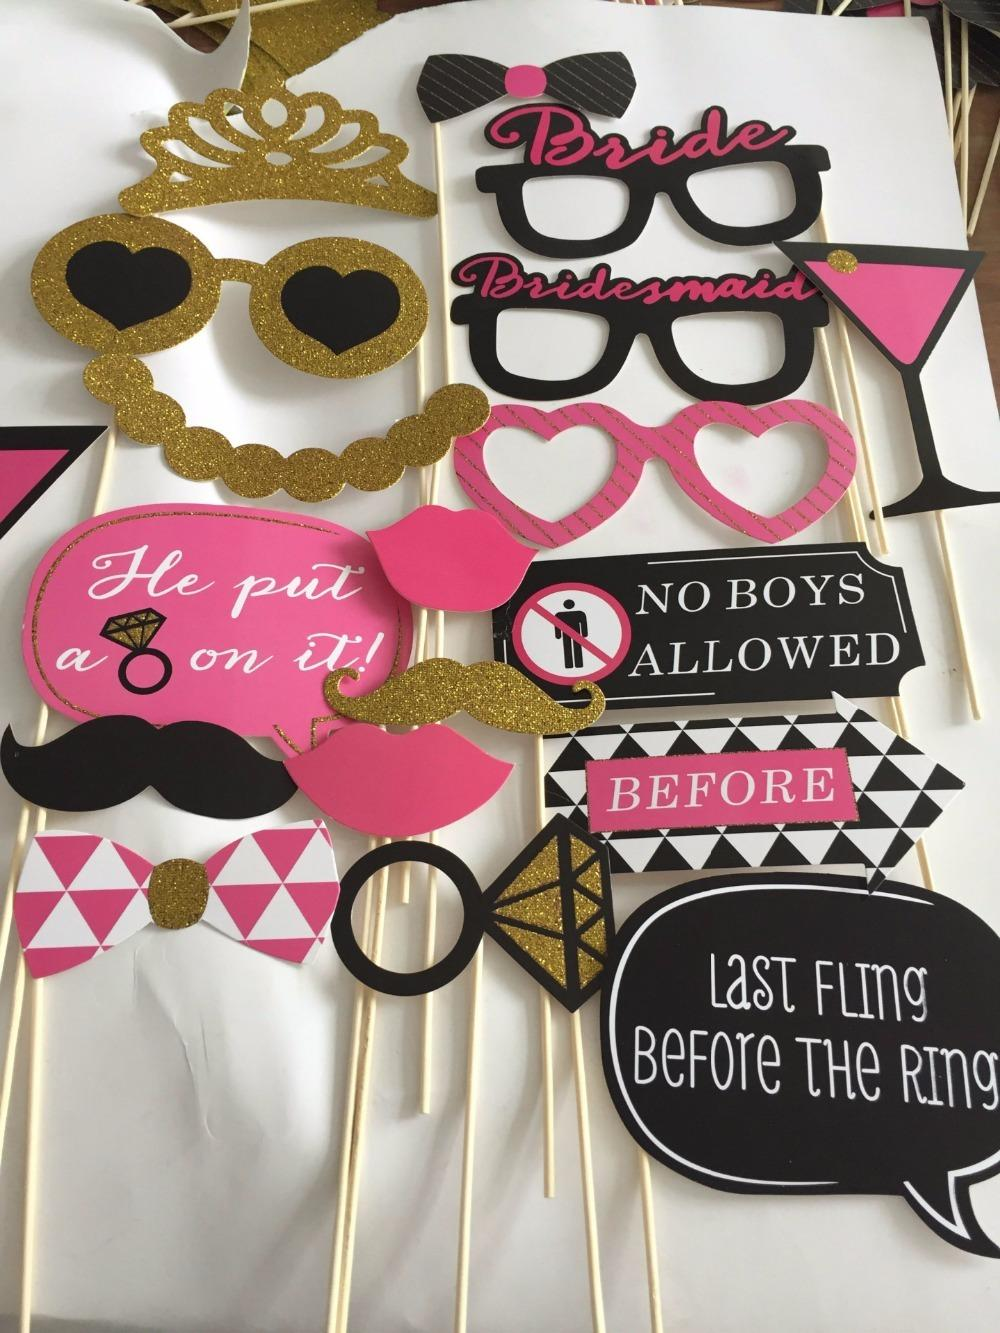 Photo Booth Props Party Mask glass Decoration Bachelorette Party Birthday Decoration Party Decorations Kids PB004/006